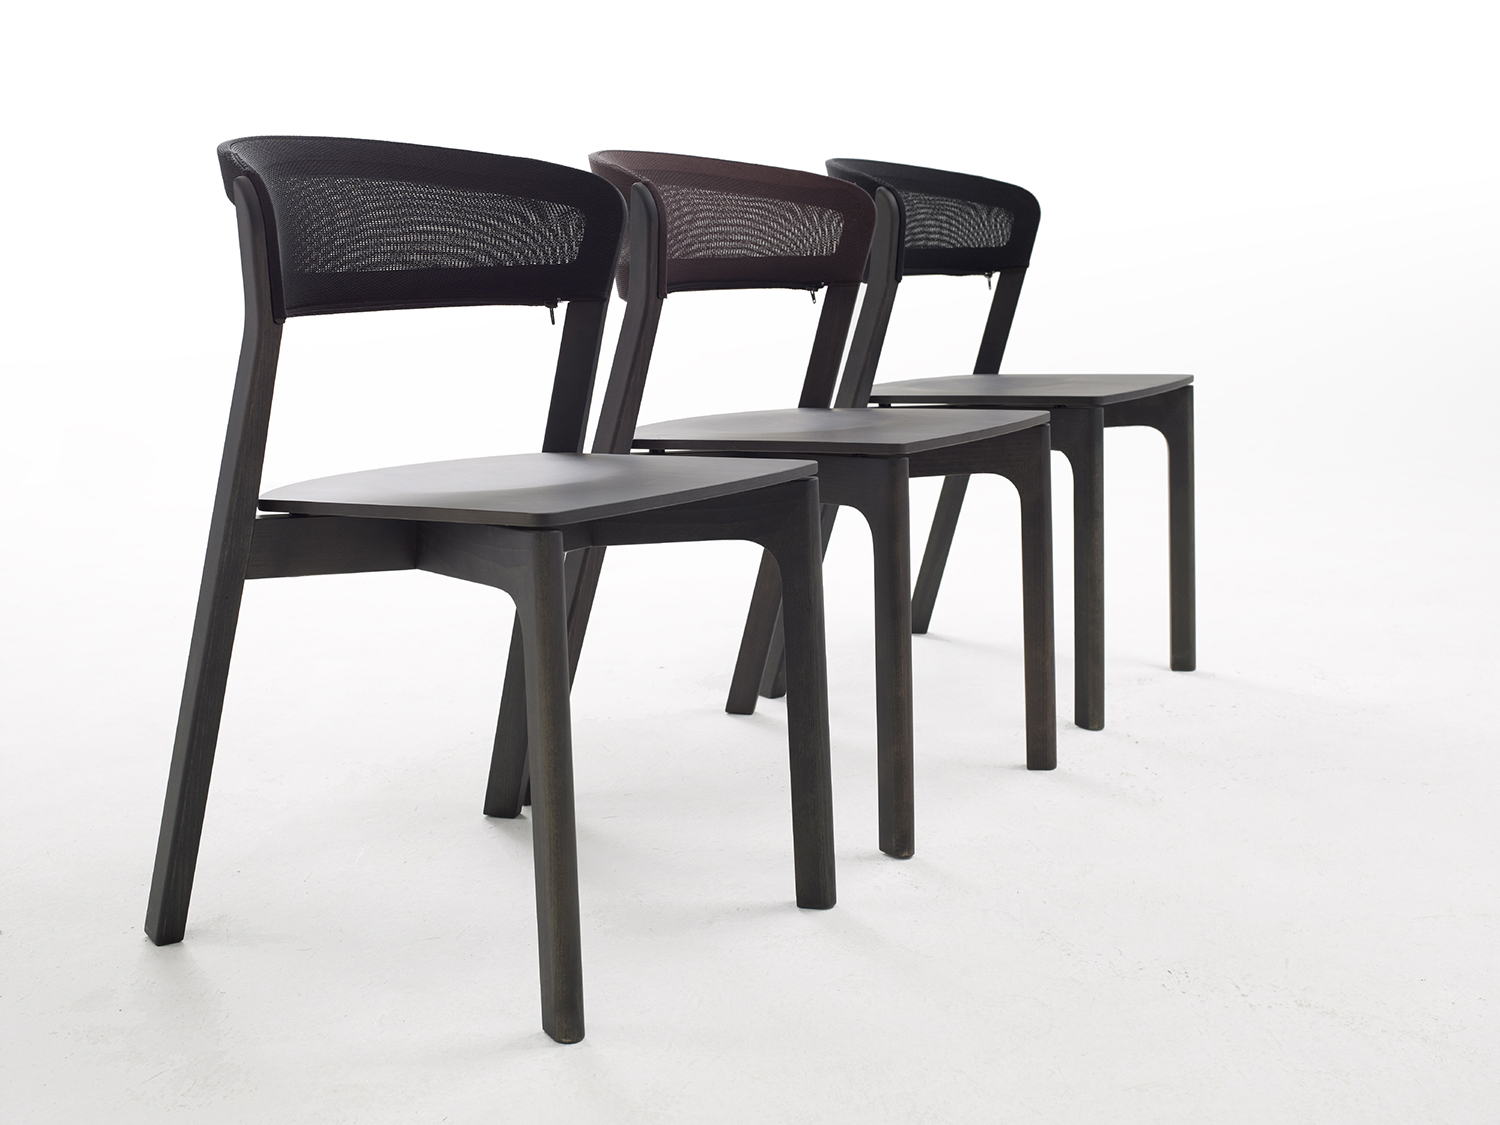 Arco cafe Chair - AD RESIZED.jpg